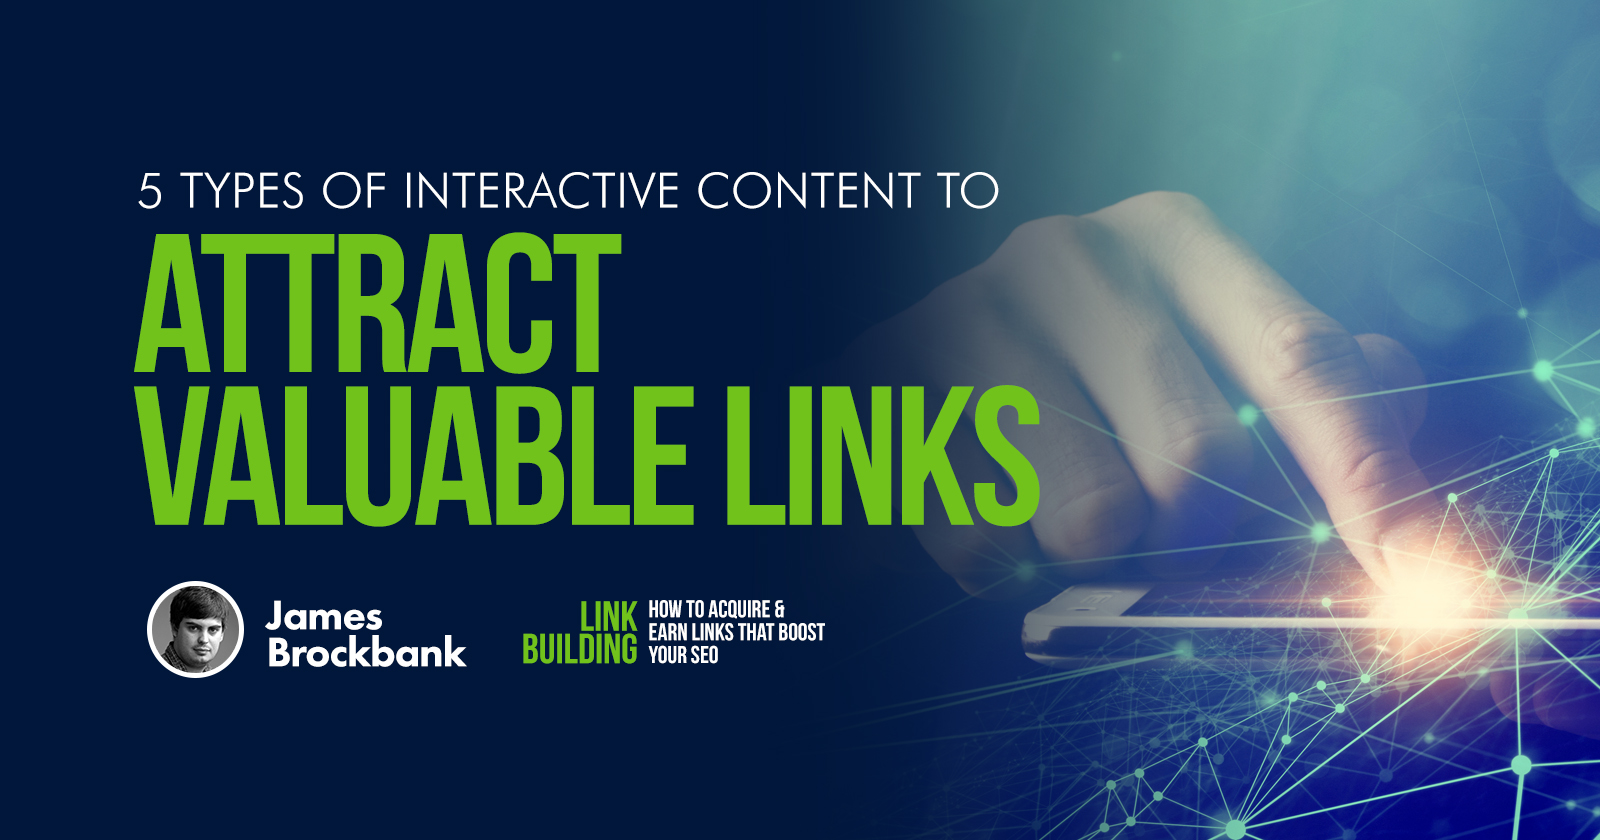 5 types of interactive content to attract valuable links 5e25a6624f53e